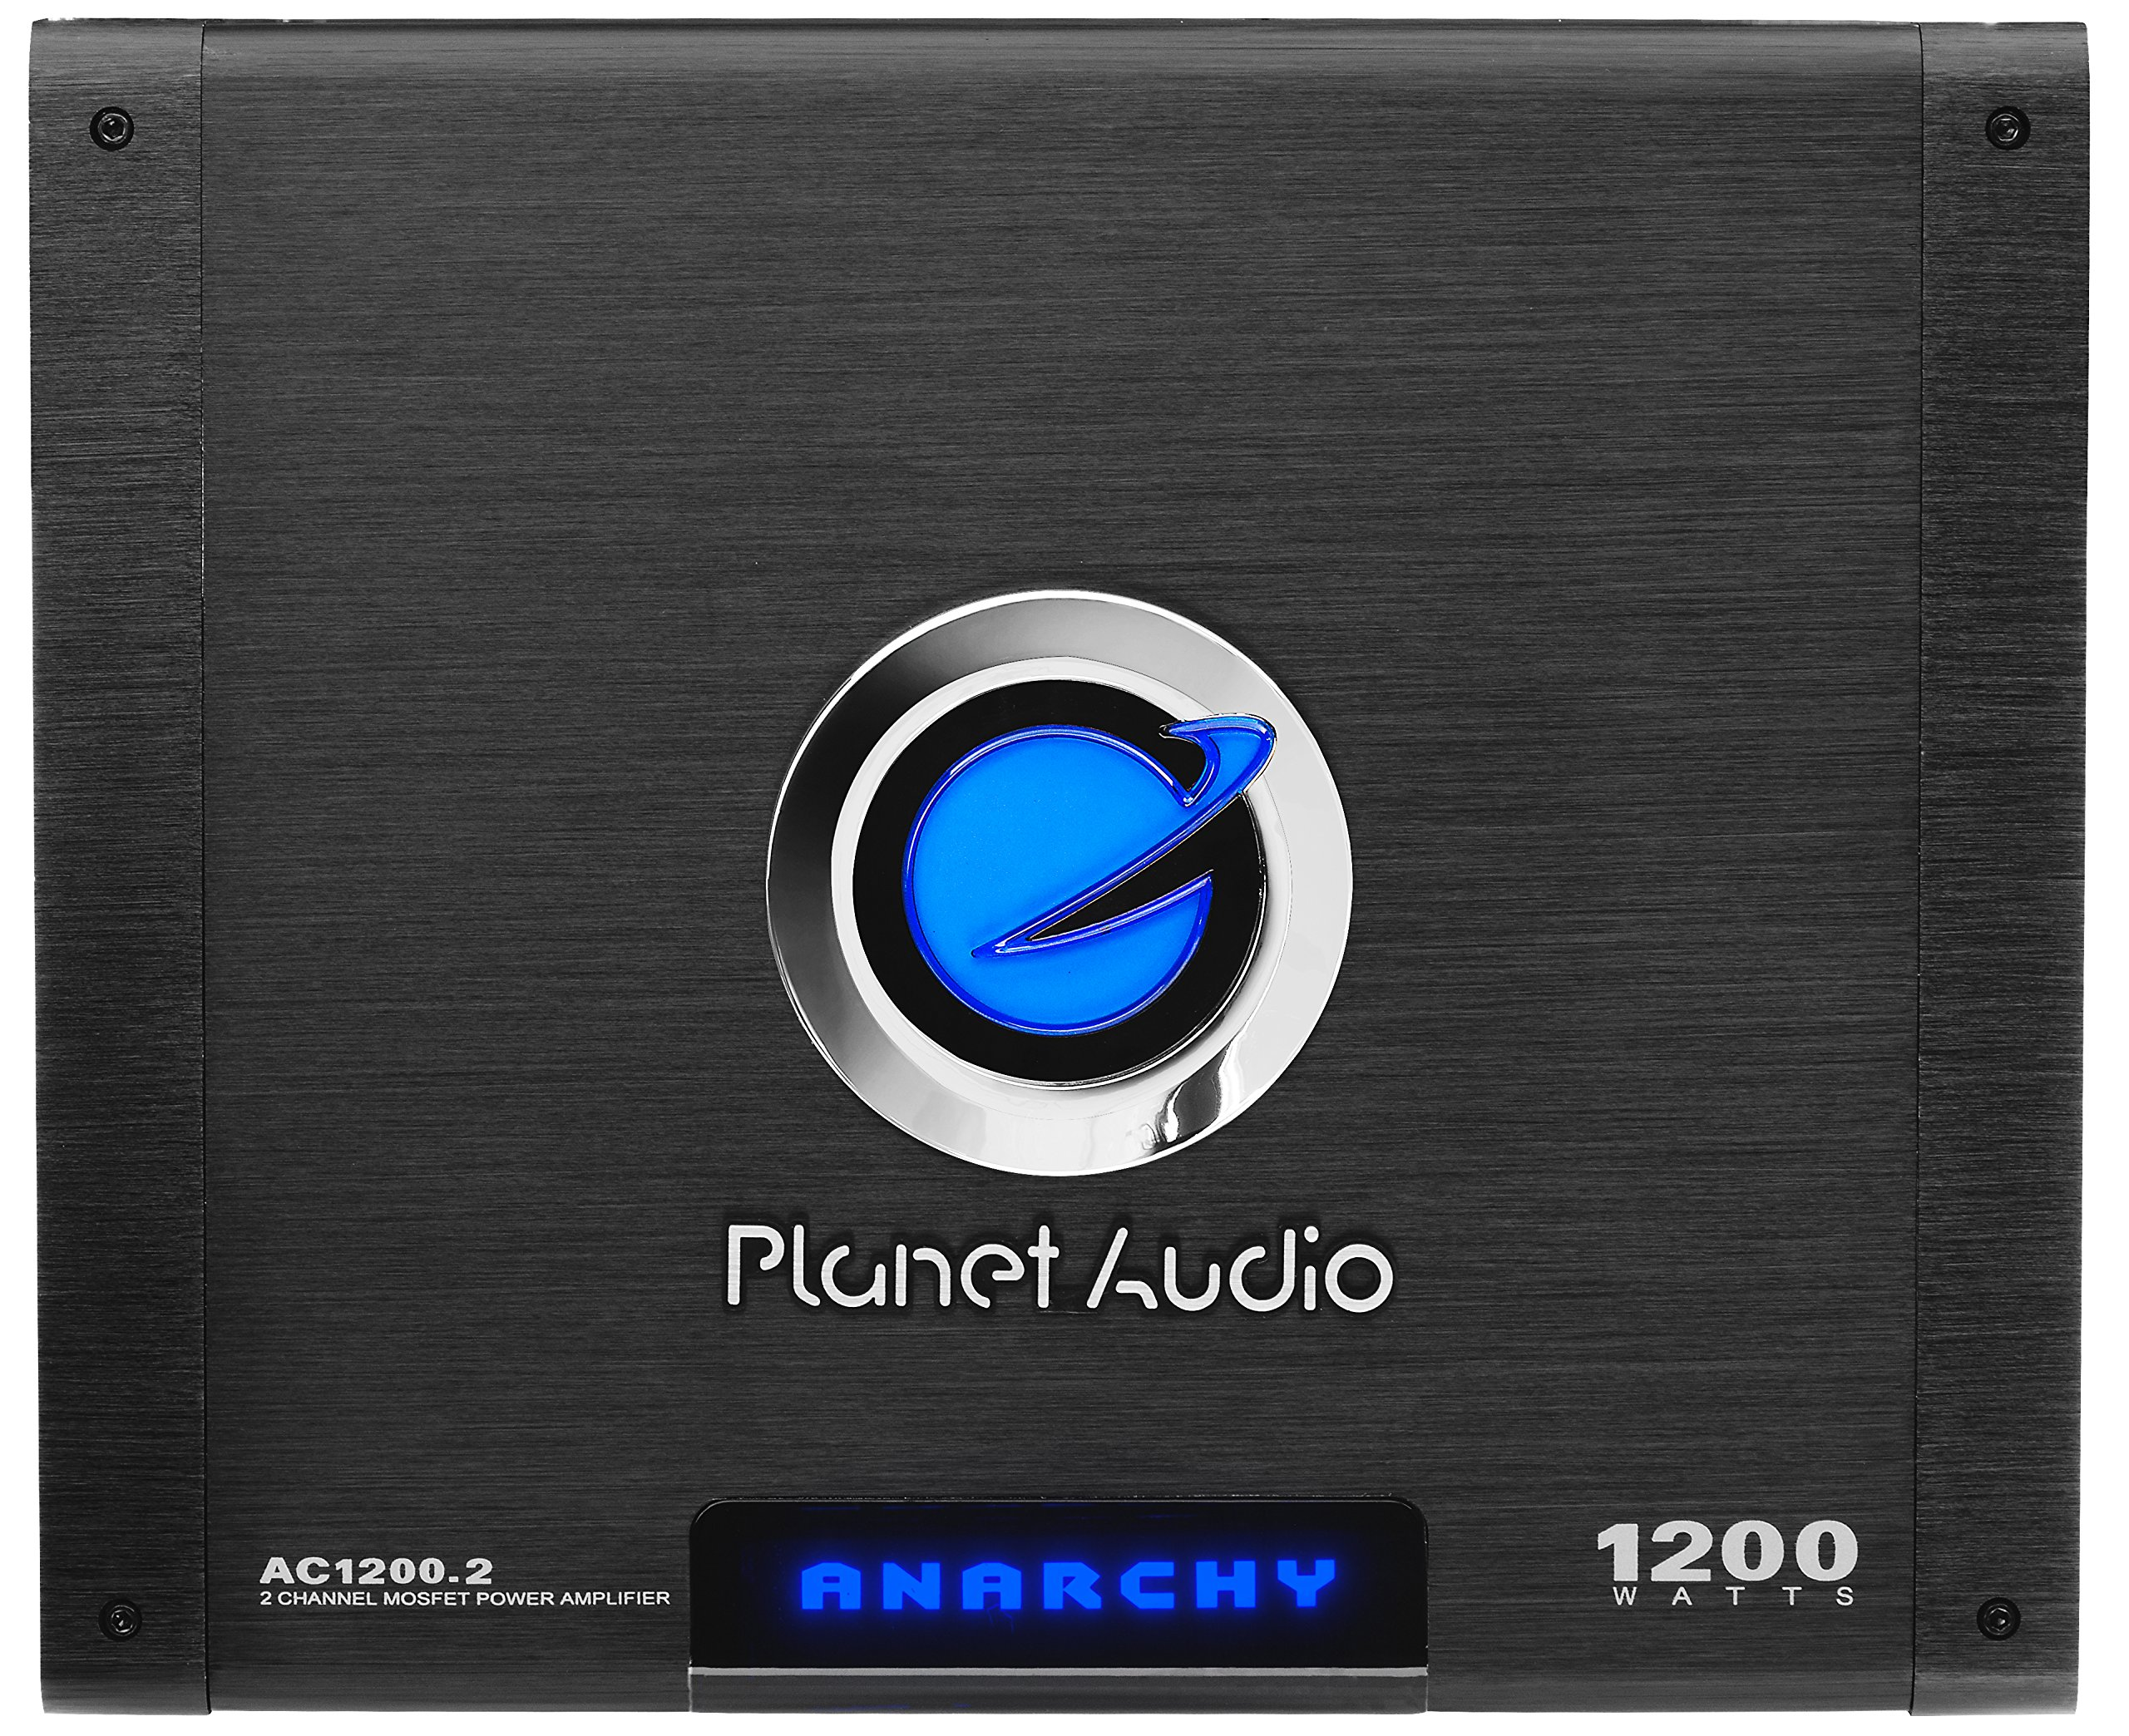 Planet Audio AC1200.2 Anarchy 1200 Watt, 2 Channel, 2/4 Ohm Stable Class A/B, Full Range, Bridgeable, MOSFET Car Amplifier with Remote Subwoofer Control